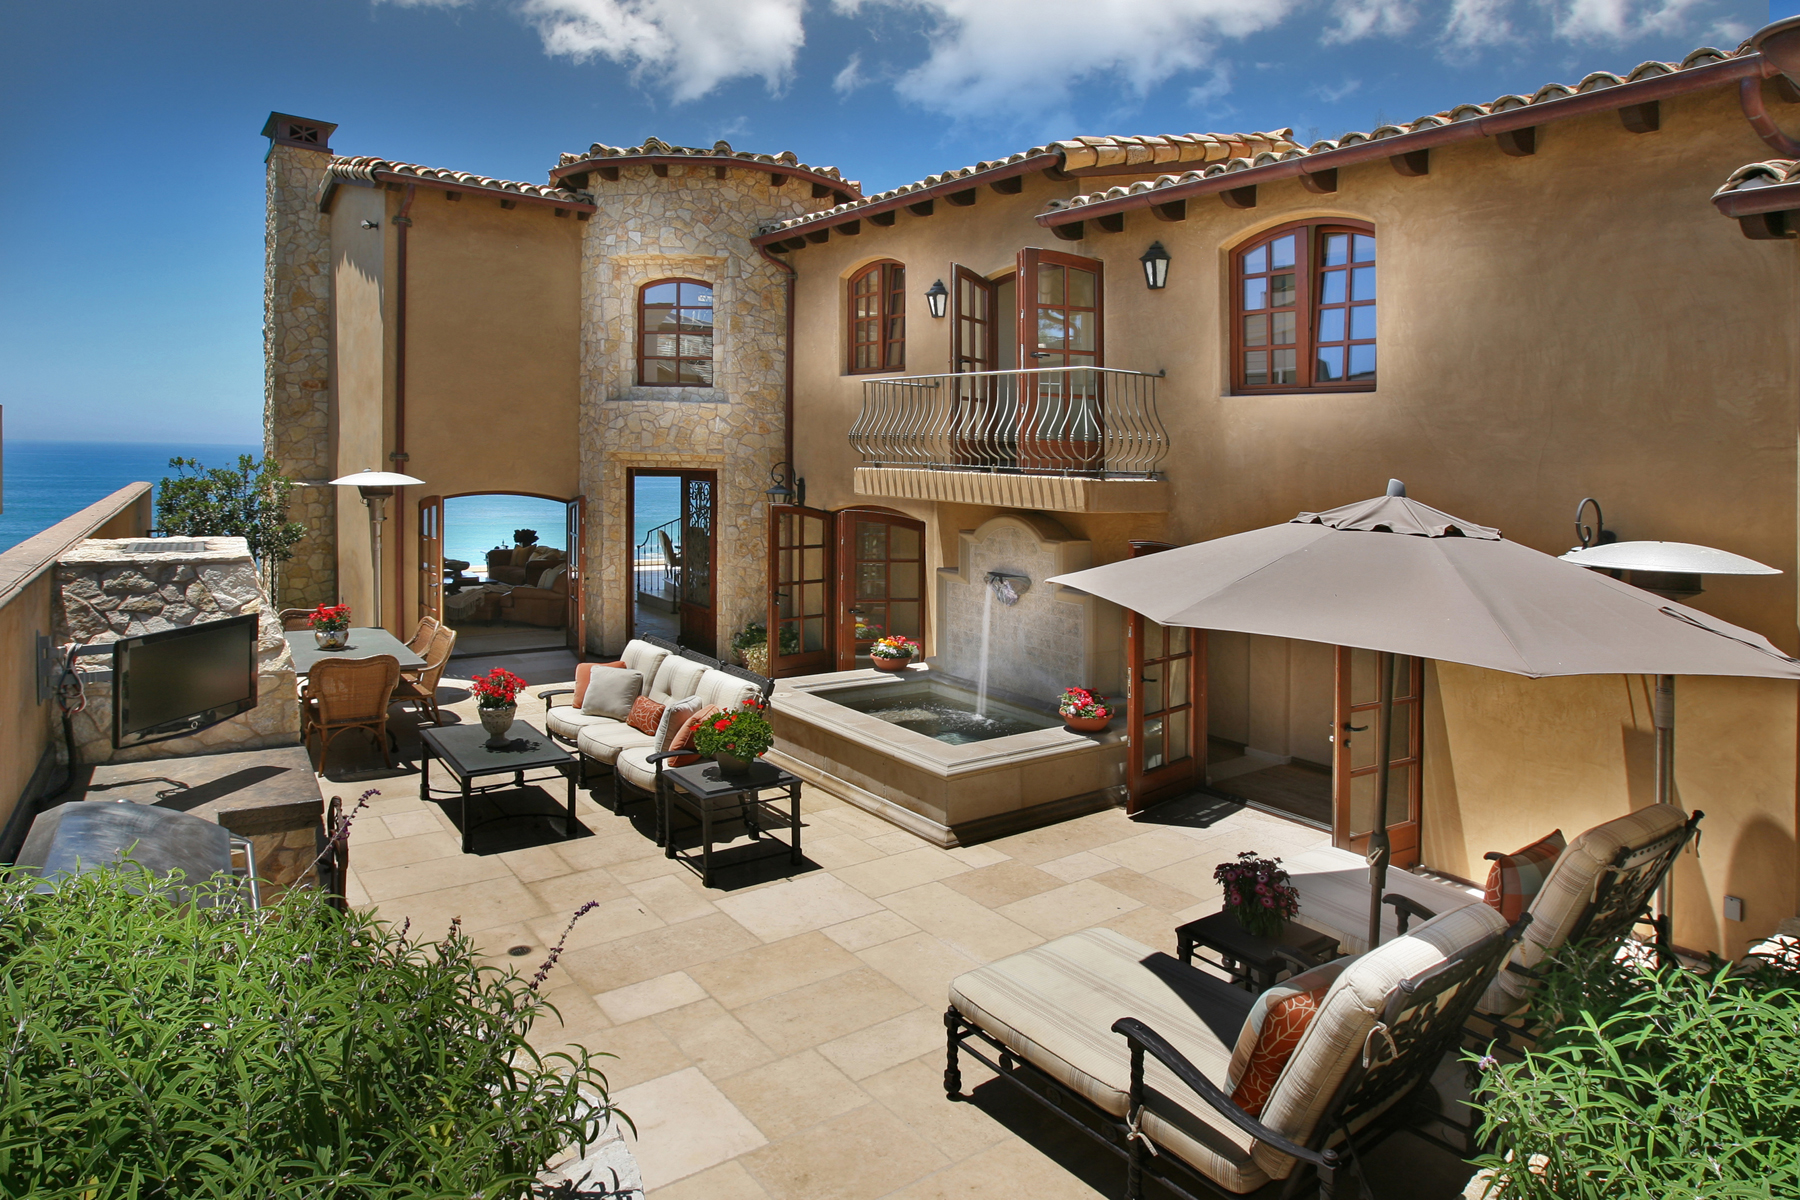 Luxury beach homes exterior - Mediterranean Style Courtyard